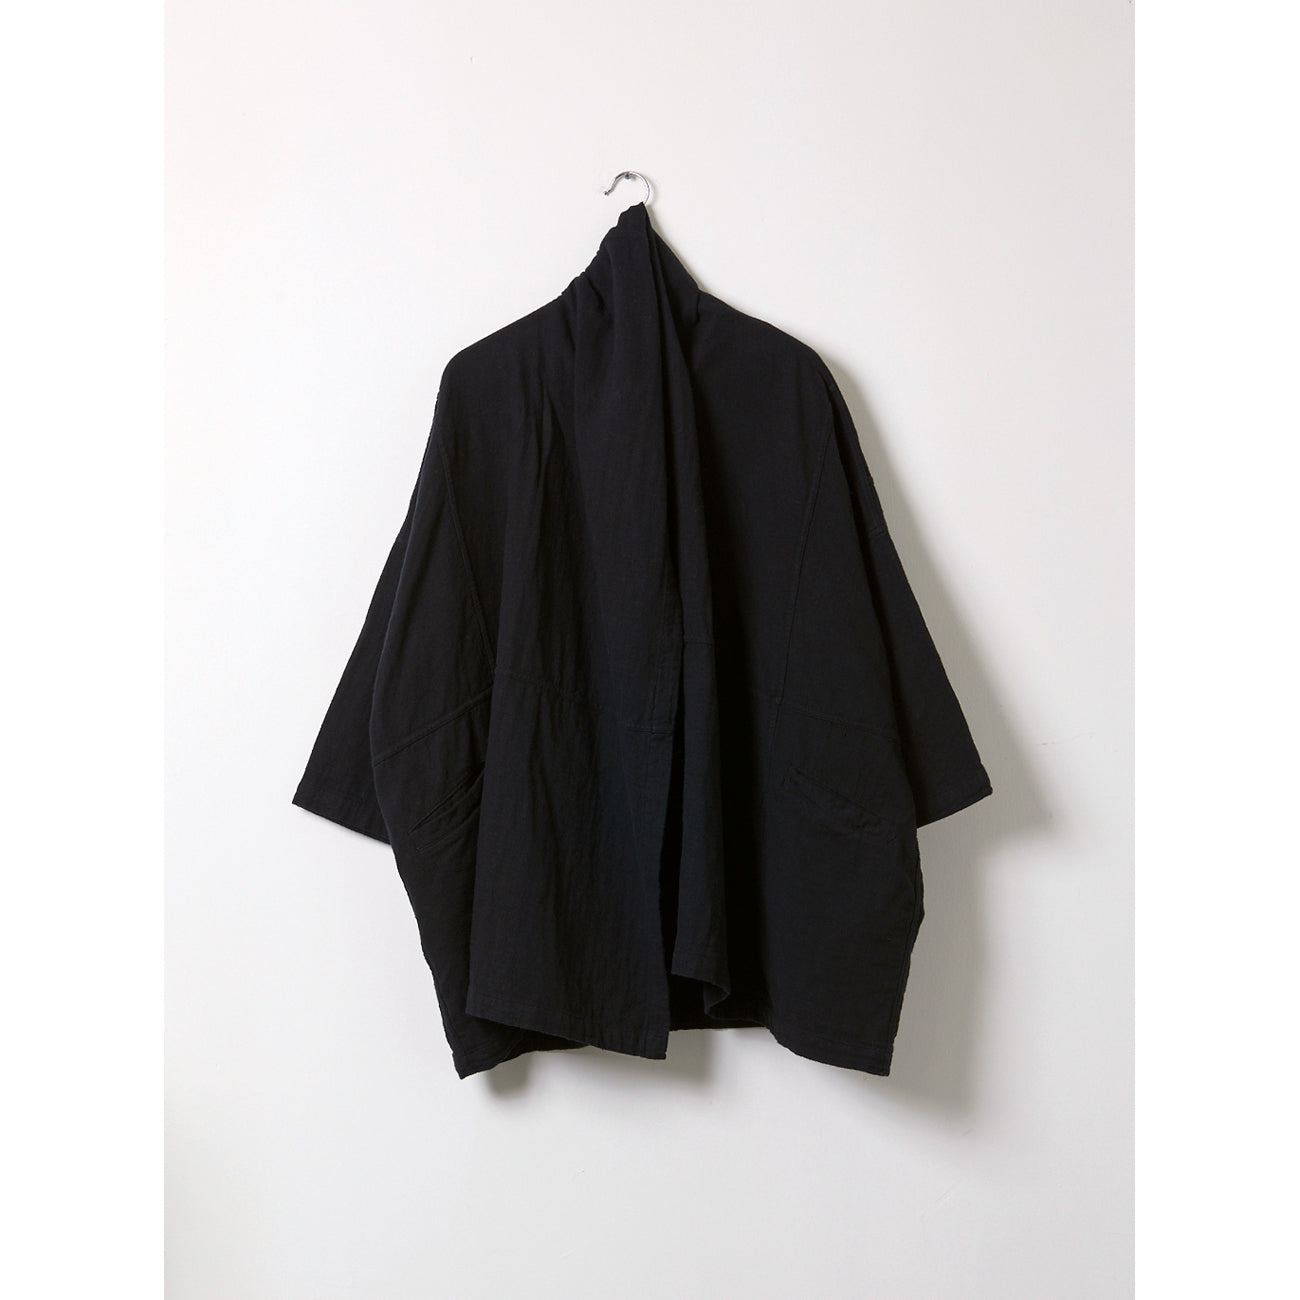 haori coat in black